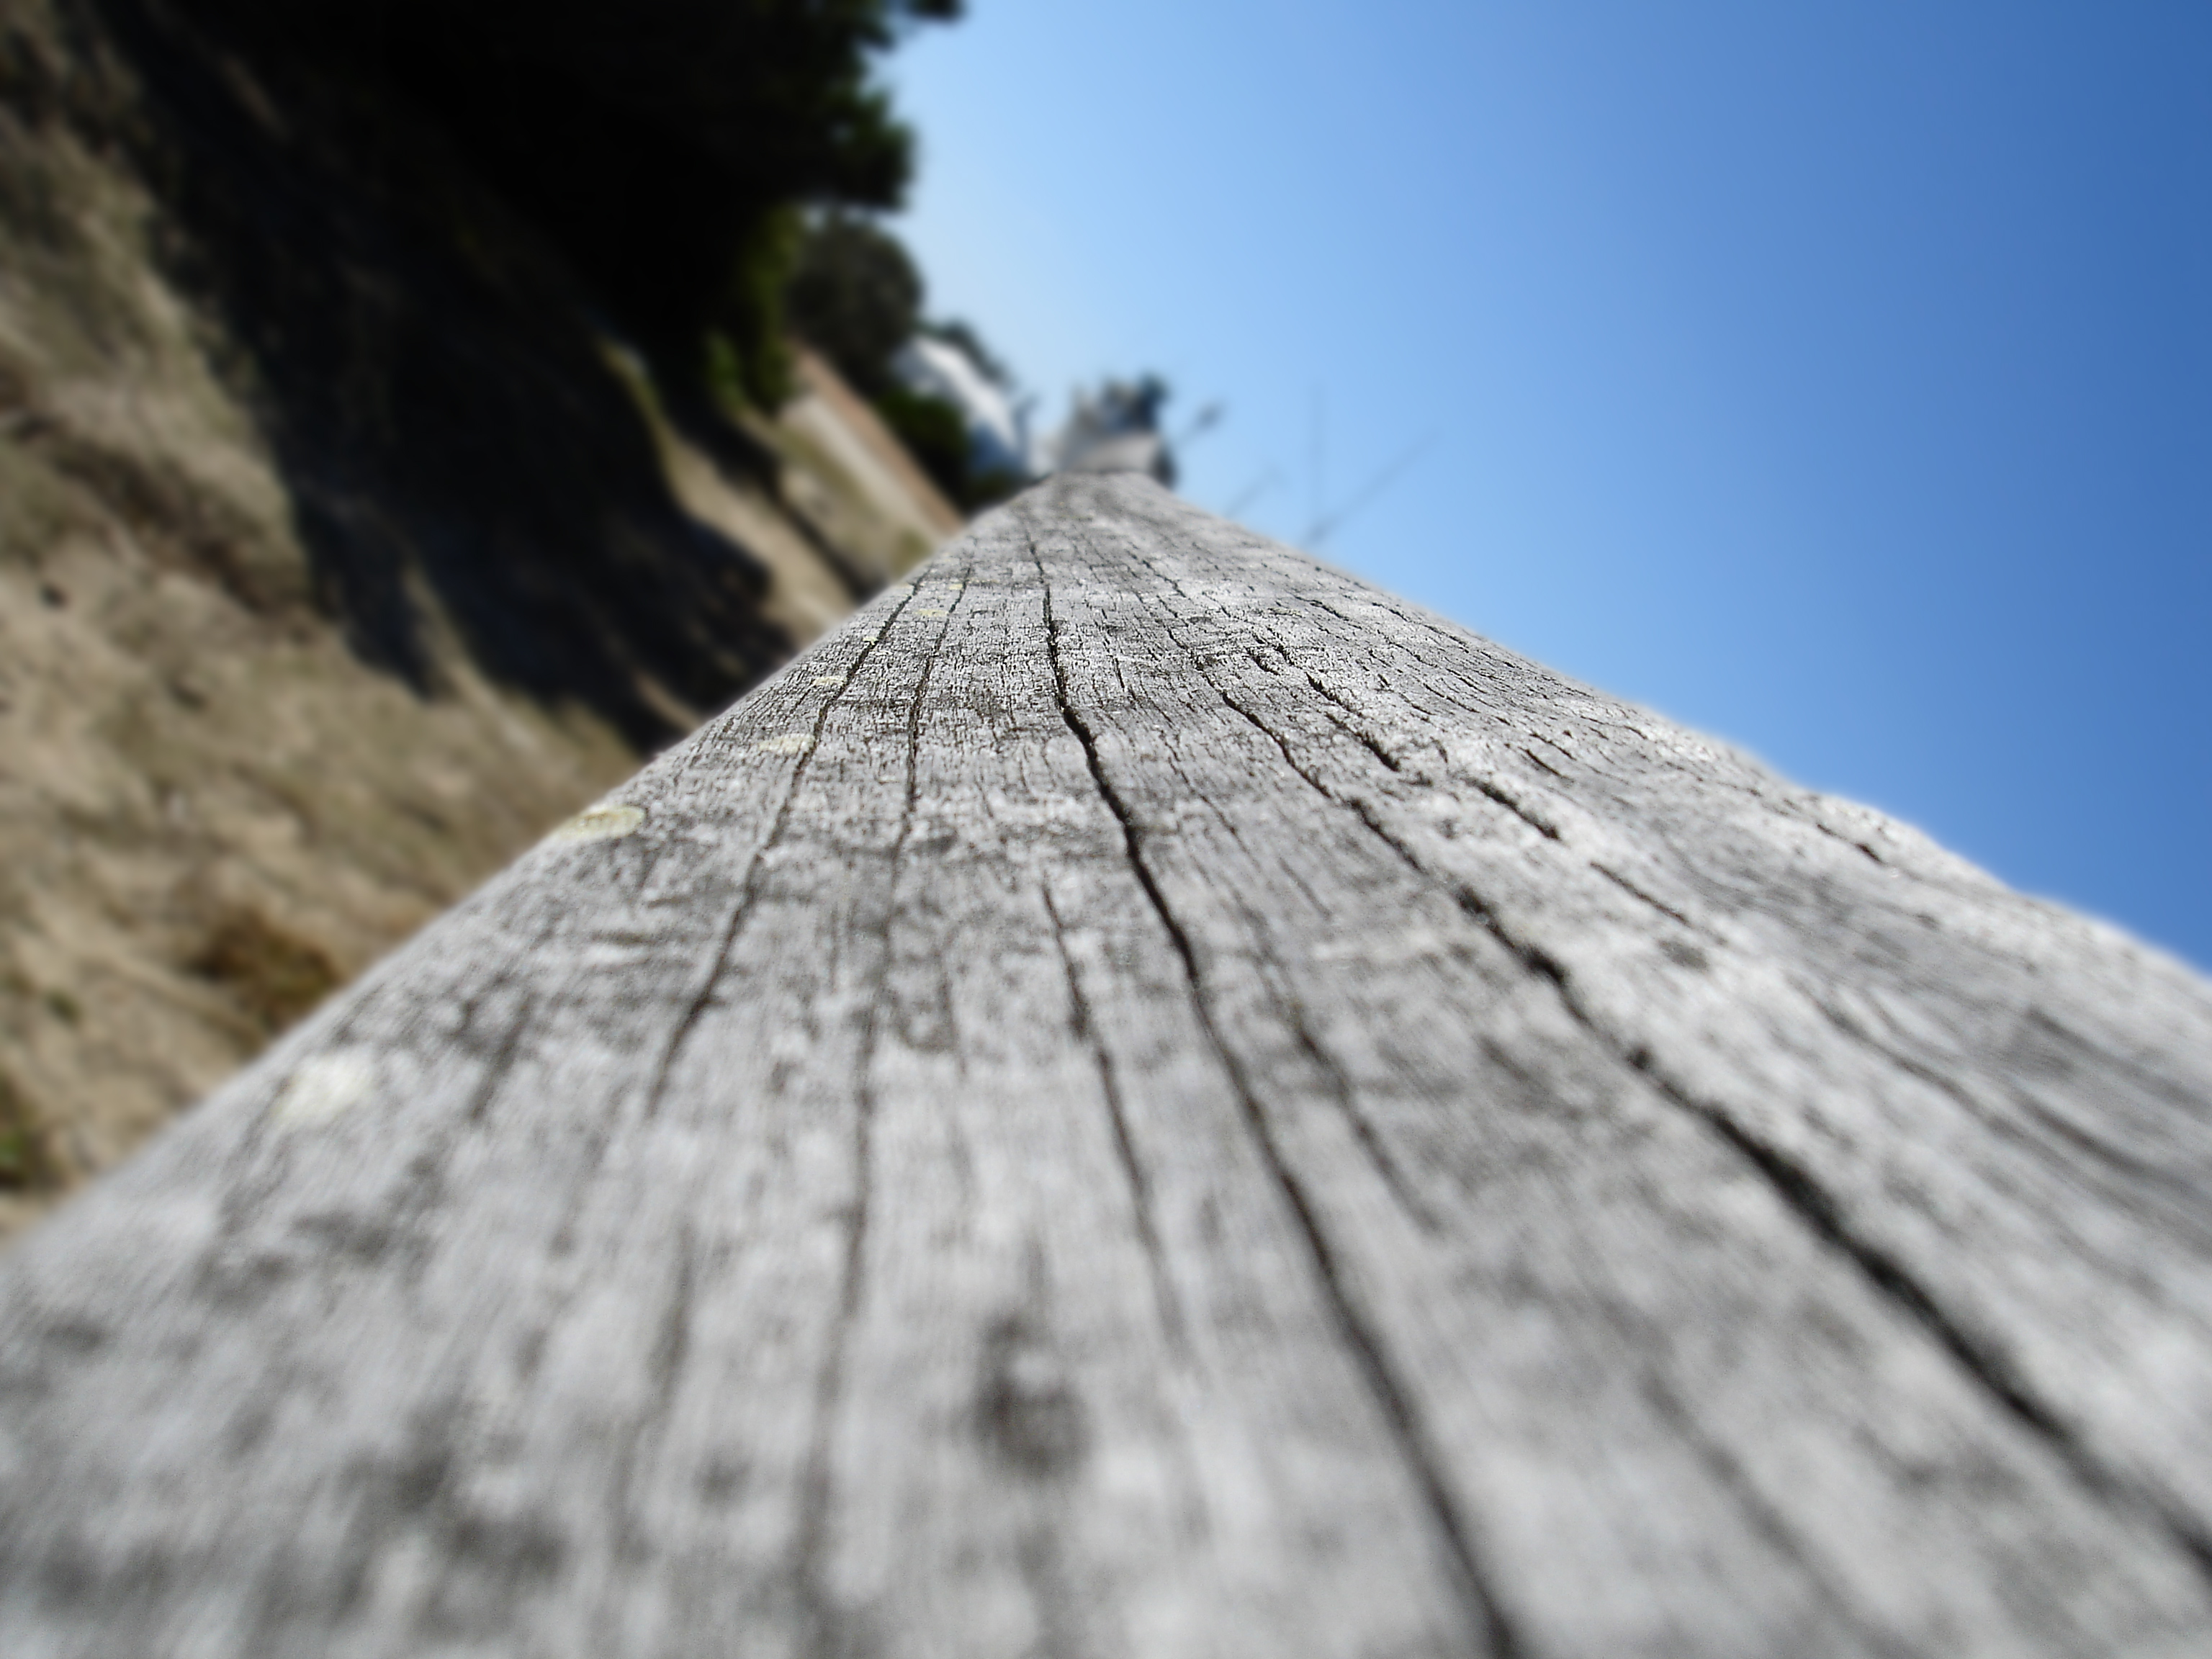 Wooden rail, Angle, Blue, Closeup, Fence, HQ Photo